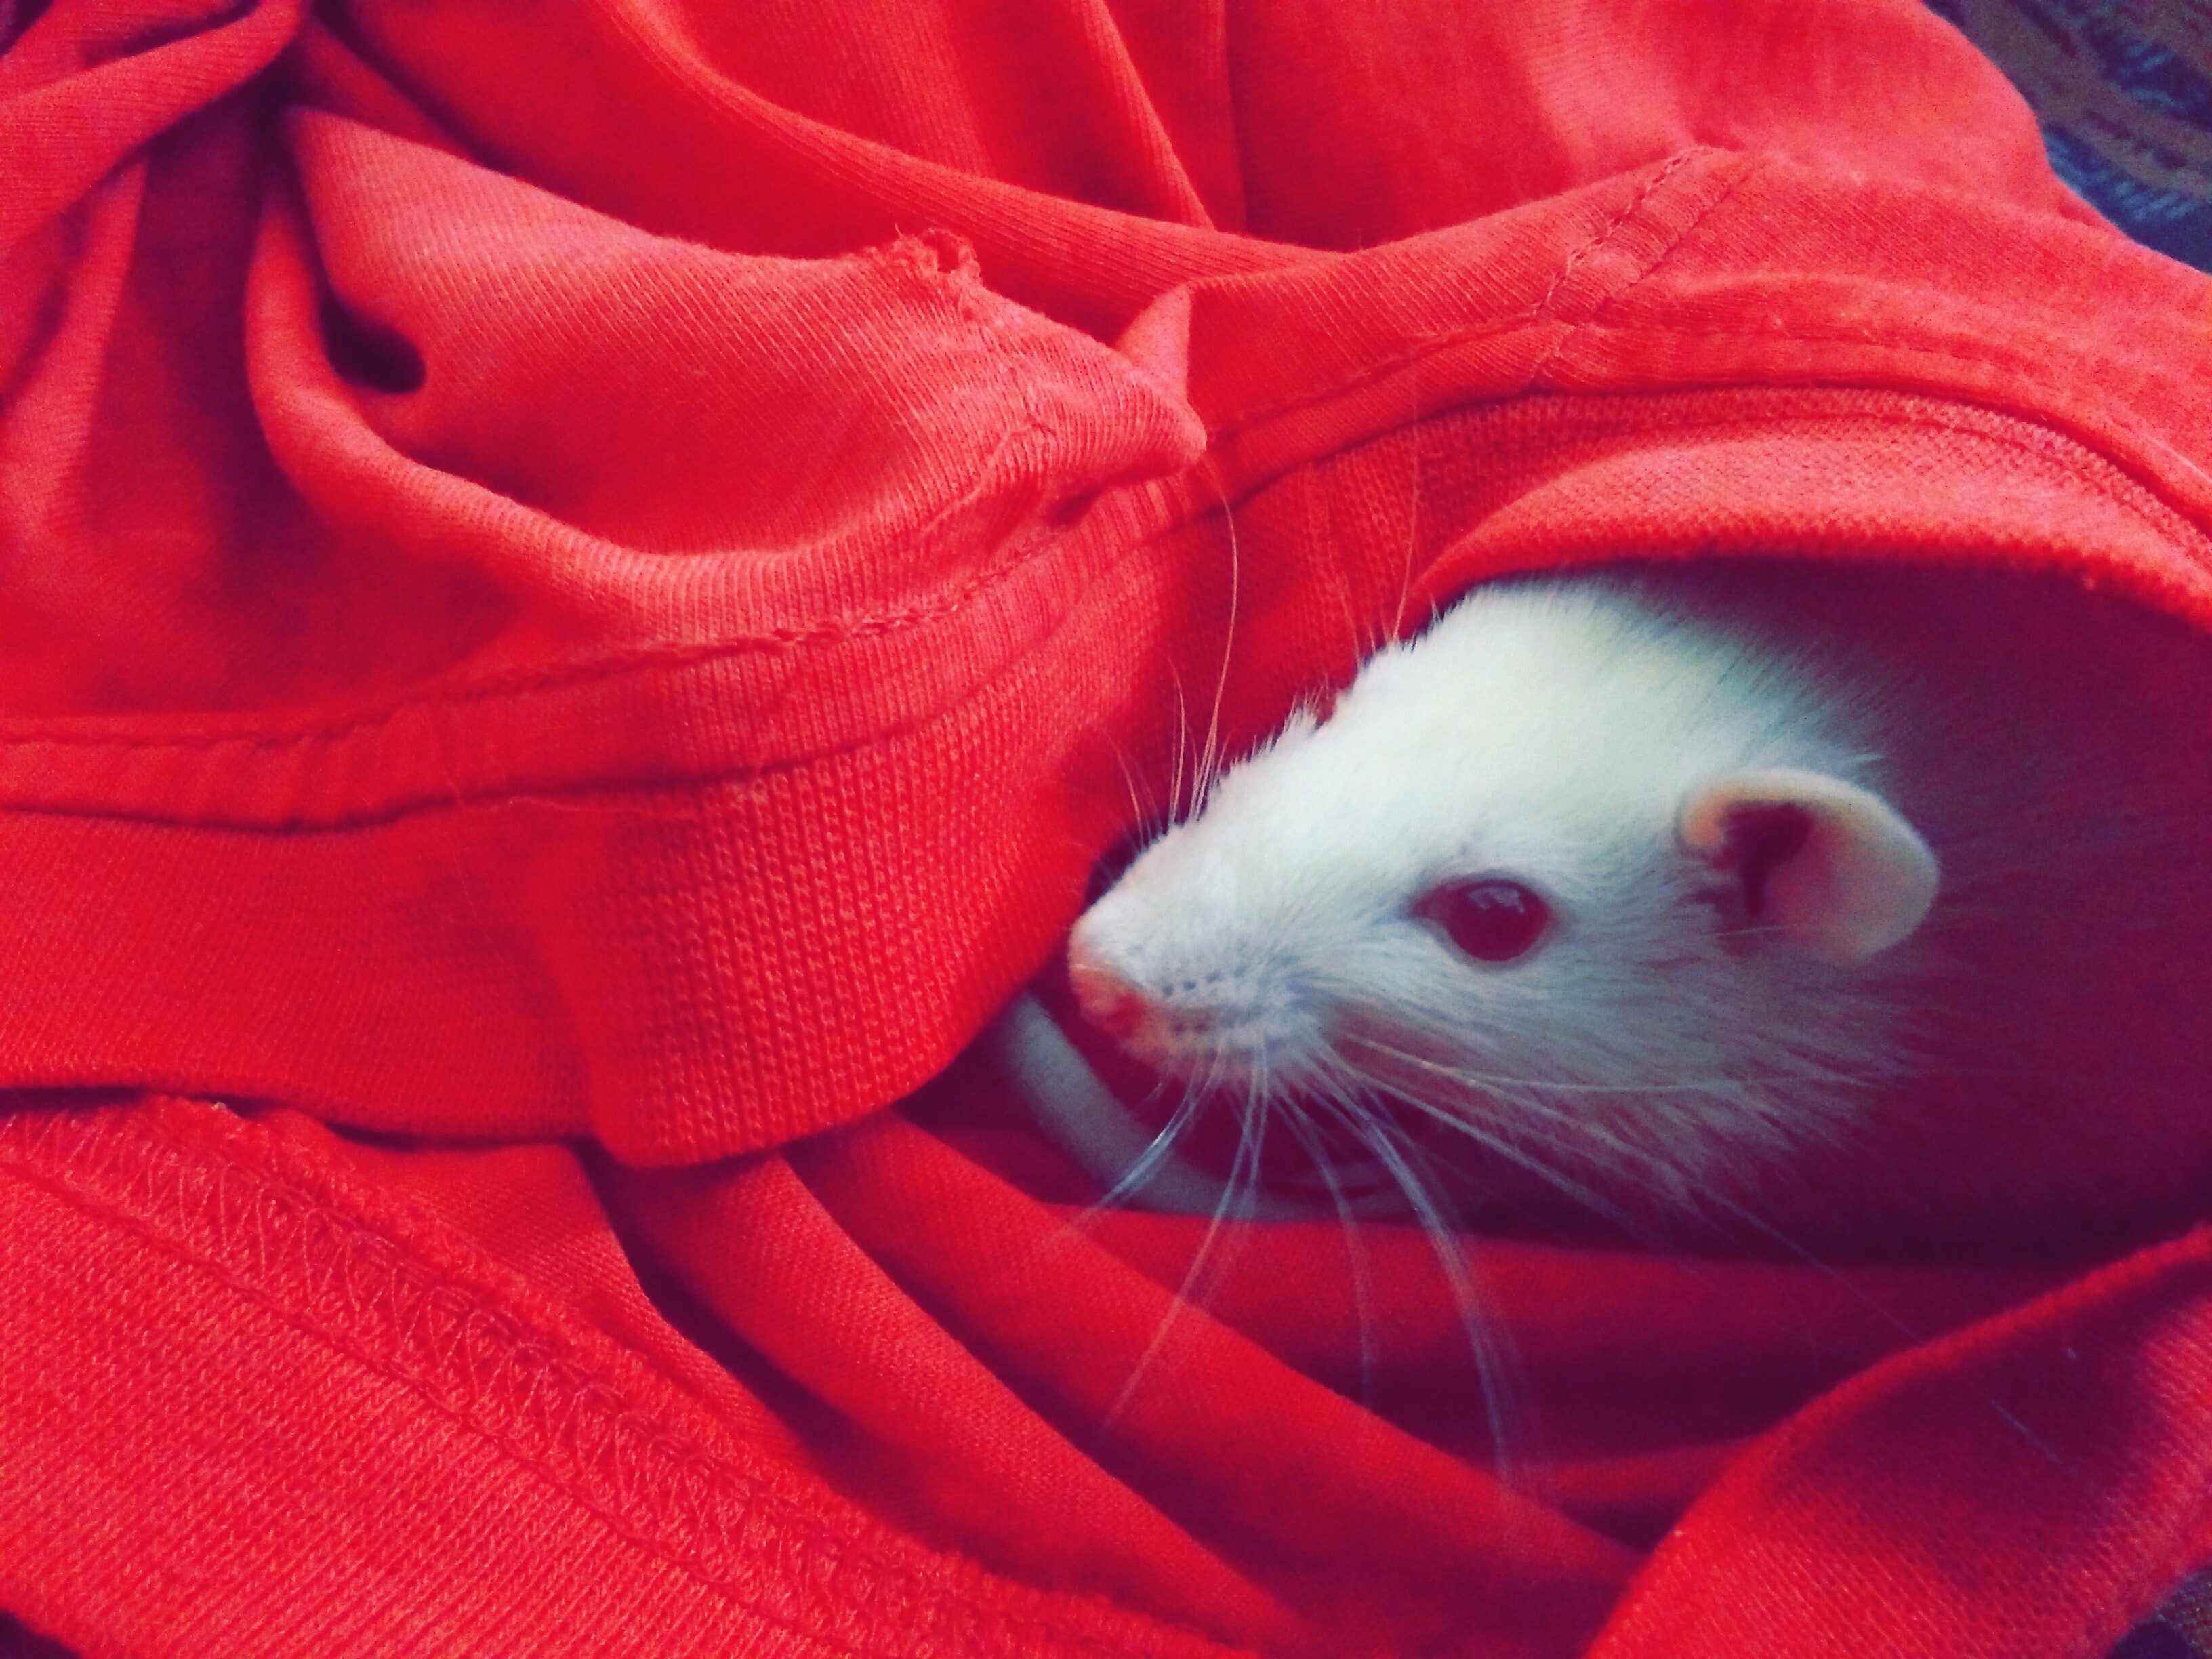 White mouse hiding on red textile photo